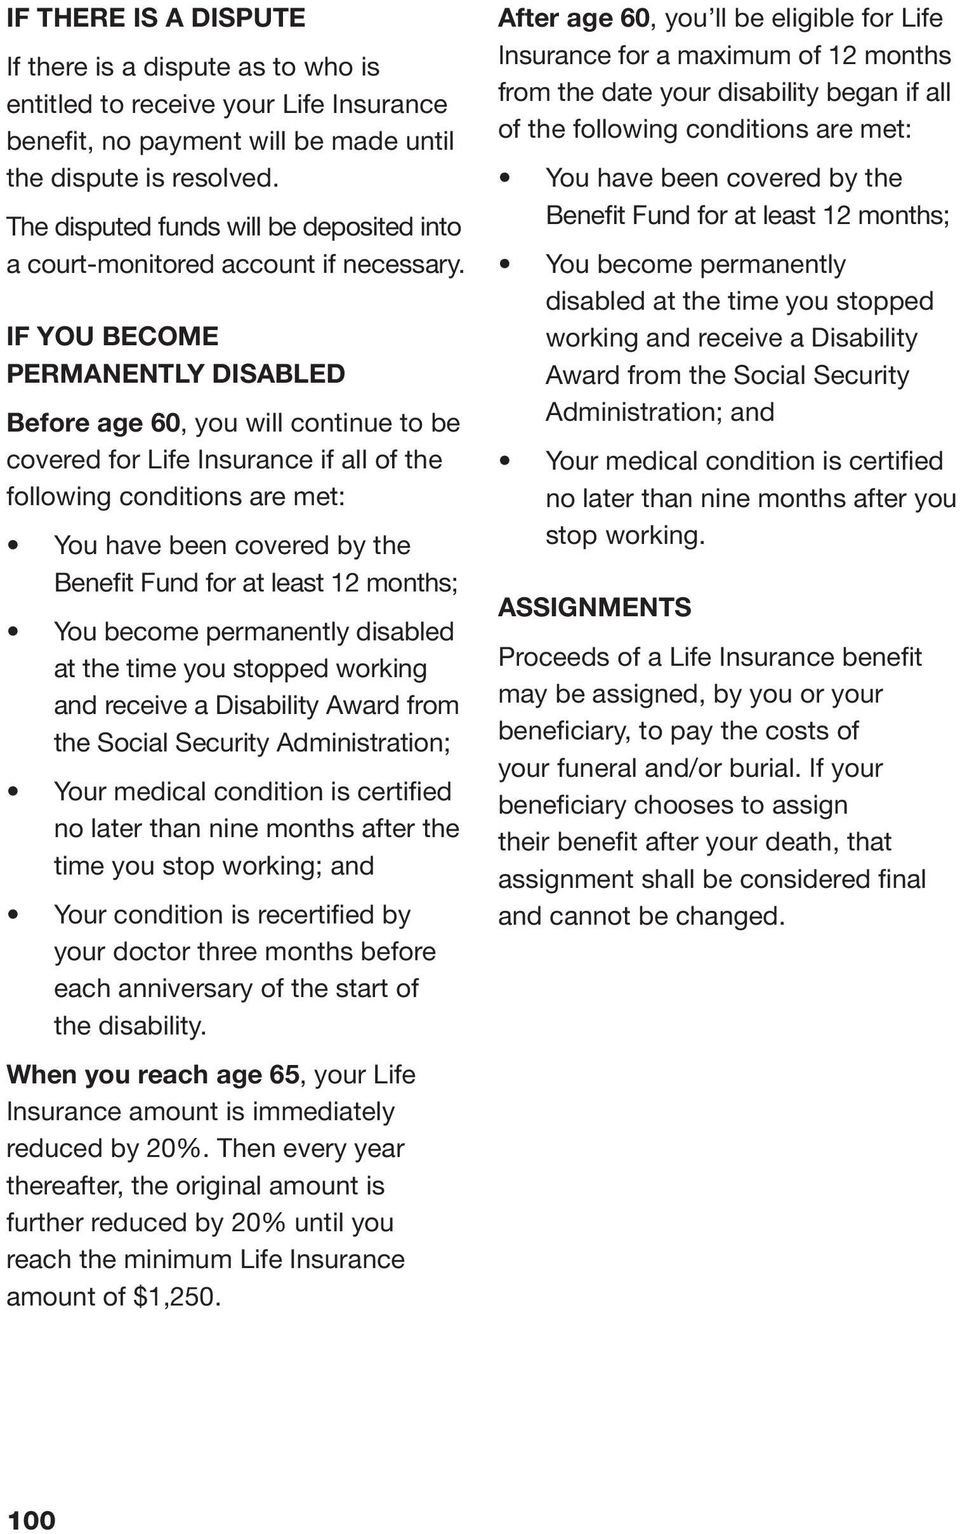 IF YOU BECOME PERMANENTLY DISABLED Before age 60, you will continue to be covered for Life Insurance if all of the following conditions are met: You have been covered by the Benefit Fund for at least